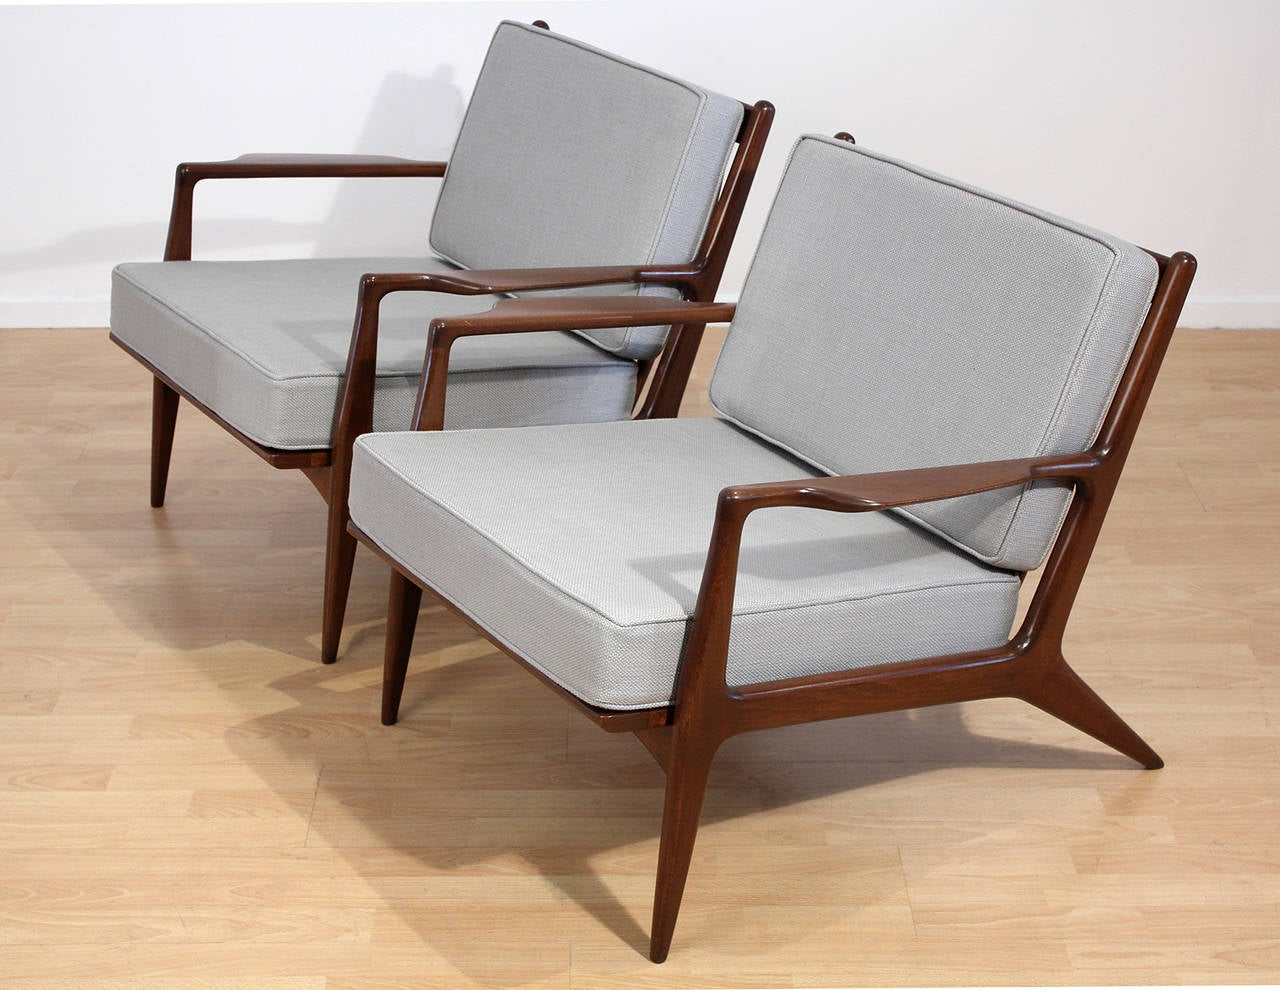 This sculptural pair of lounge chairs by ib kofod larsen is no longer - Ib Kofod Larsen Lounge Chairs 3